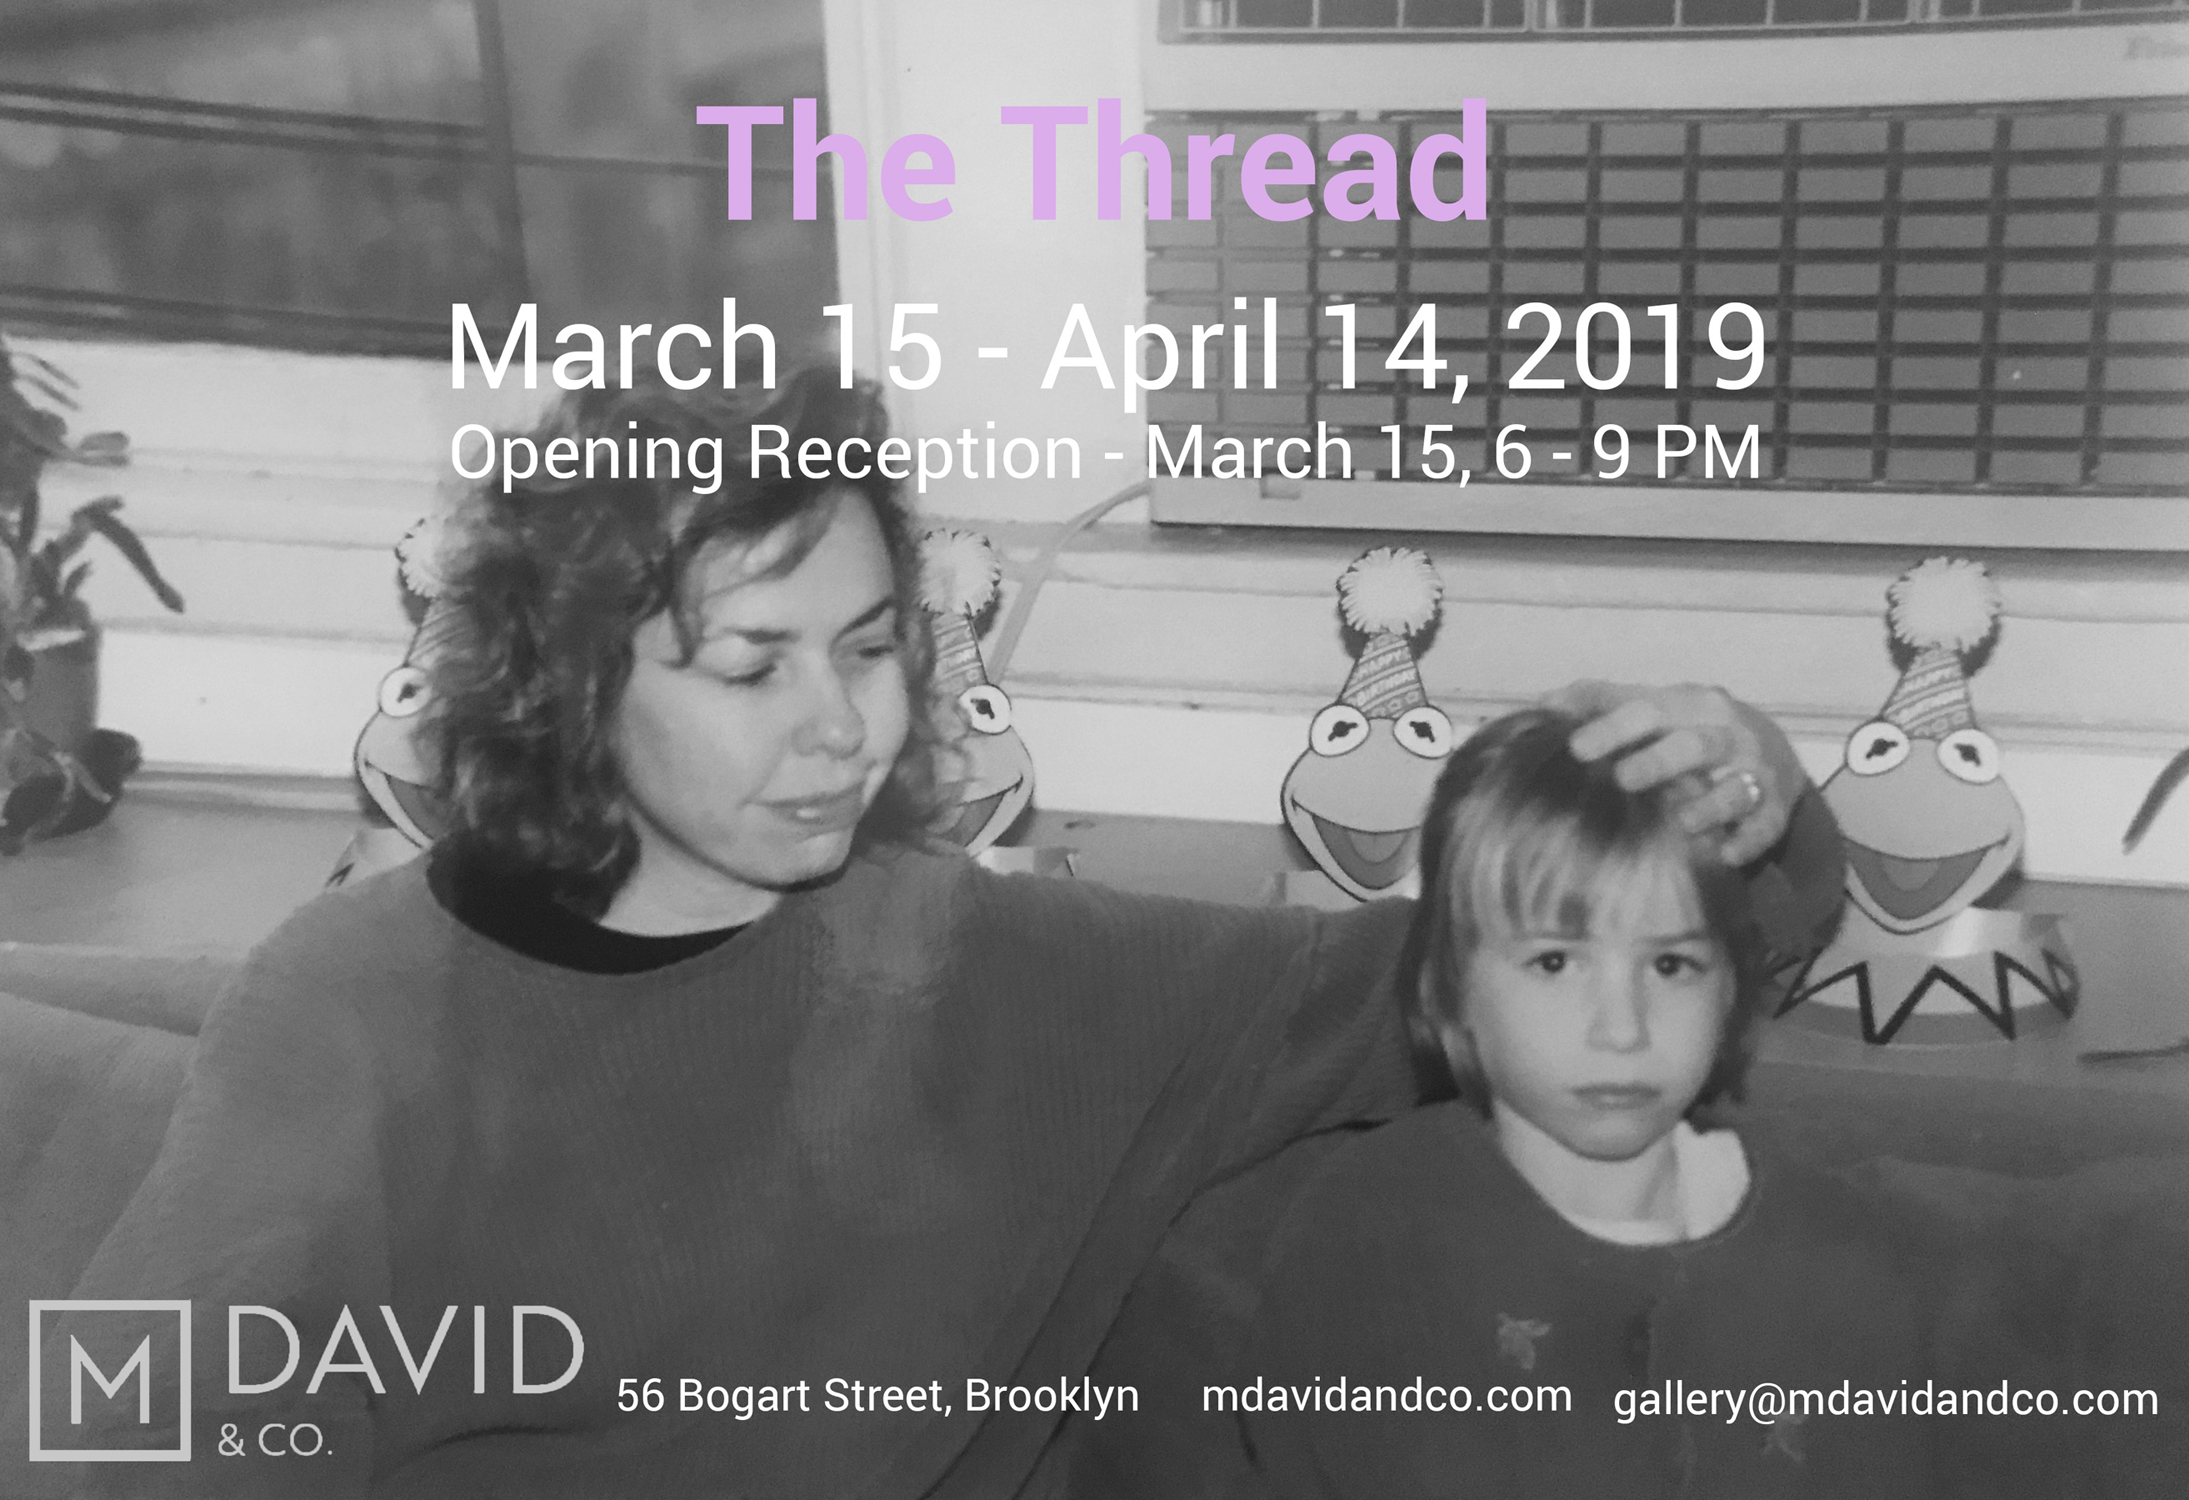 THE THREAD - Paintings by Lizbeth Mitty & Dana James - March 15th - April 21st, 2019Bushwick Daily by Becca Beberaggi Bushwick Gallery Explores Mother-Daughter Artist Duo's Relationship for Women's History MonthArt & Object by Lilly Wei The Thread